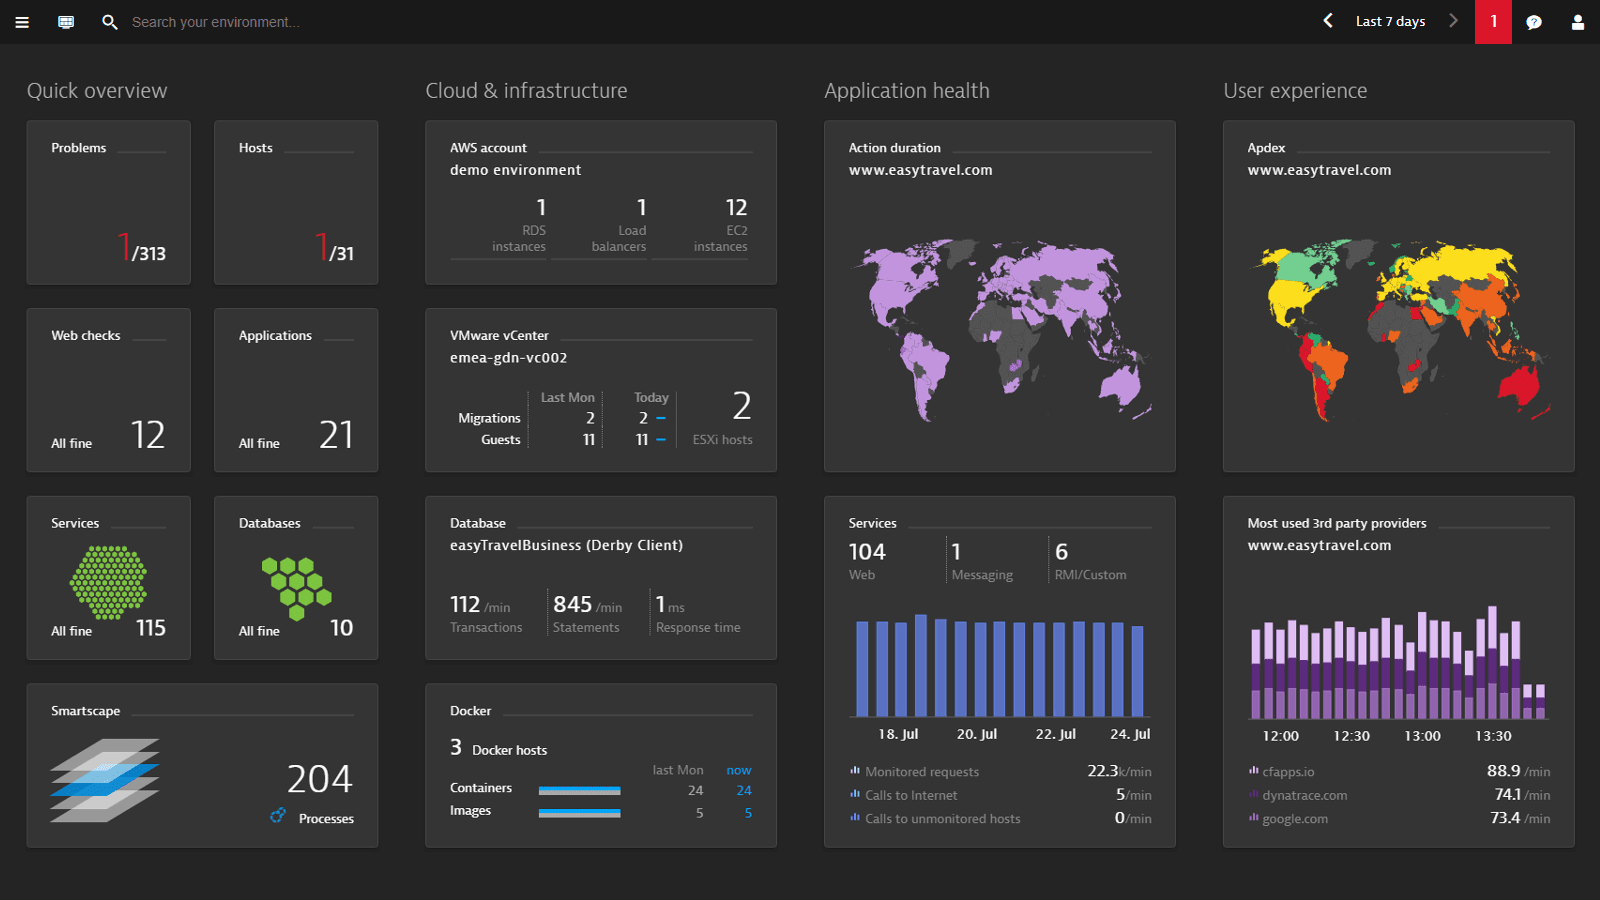 The initial Dynatrace dashboard for a quick overview of your IT environment